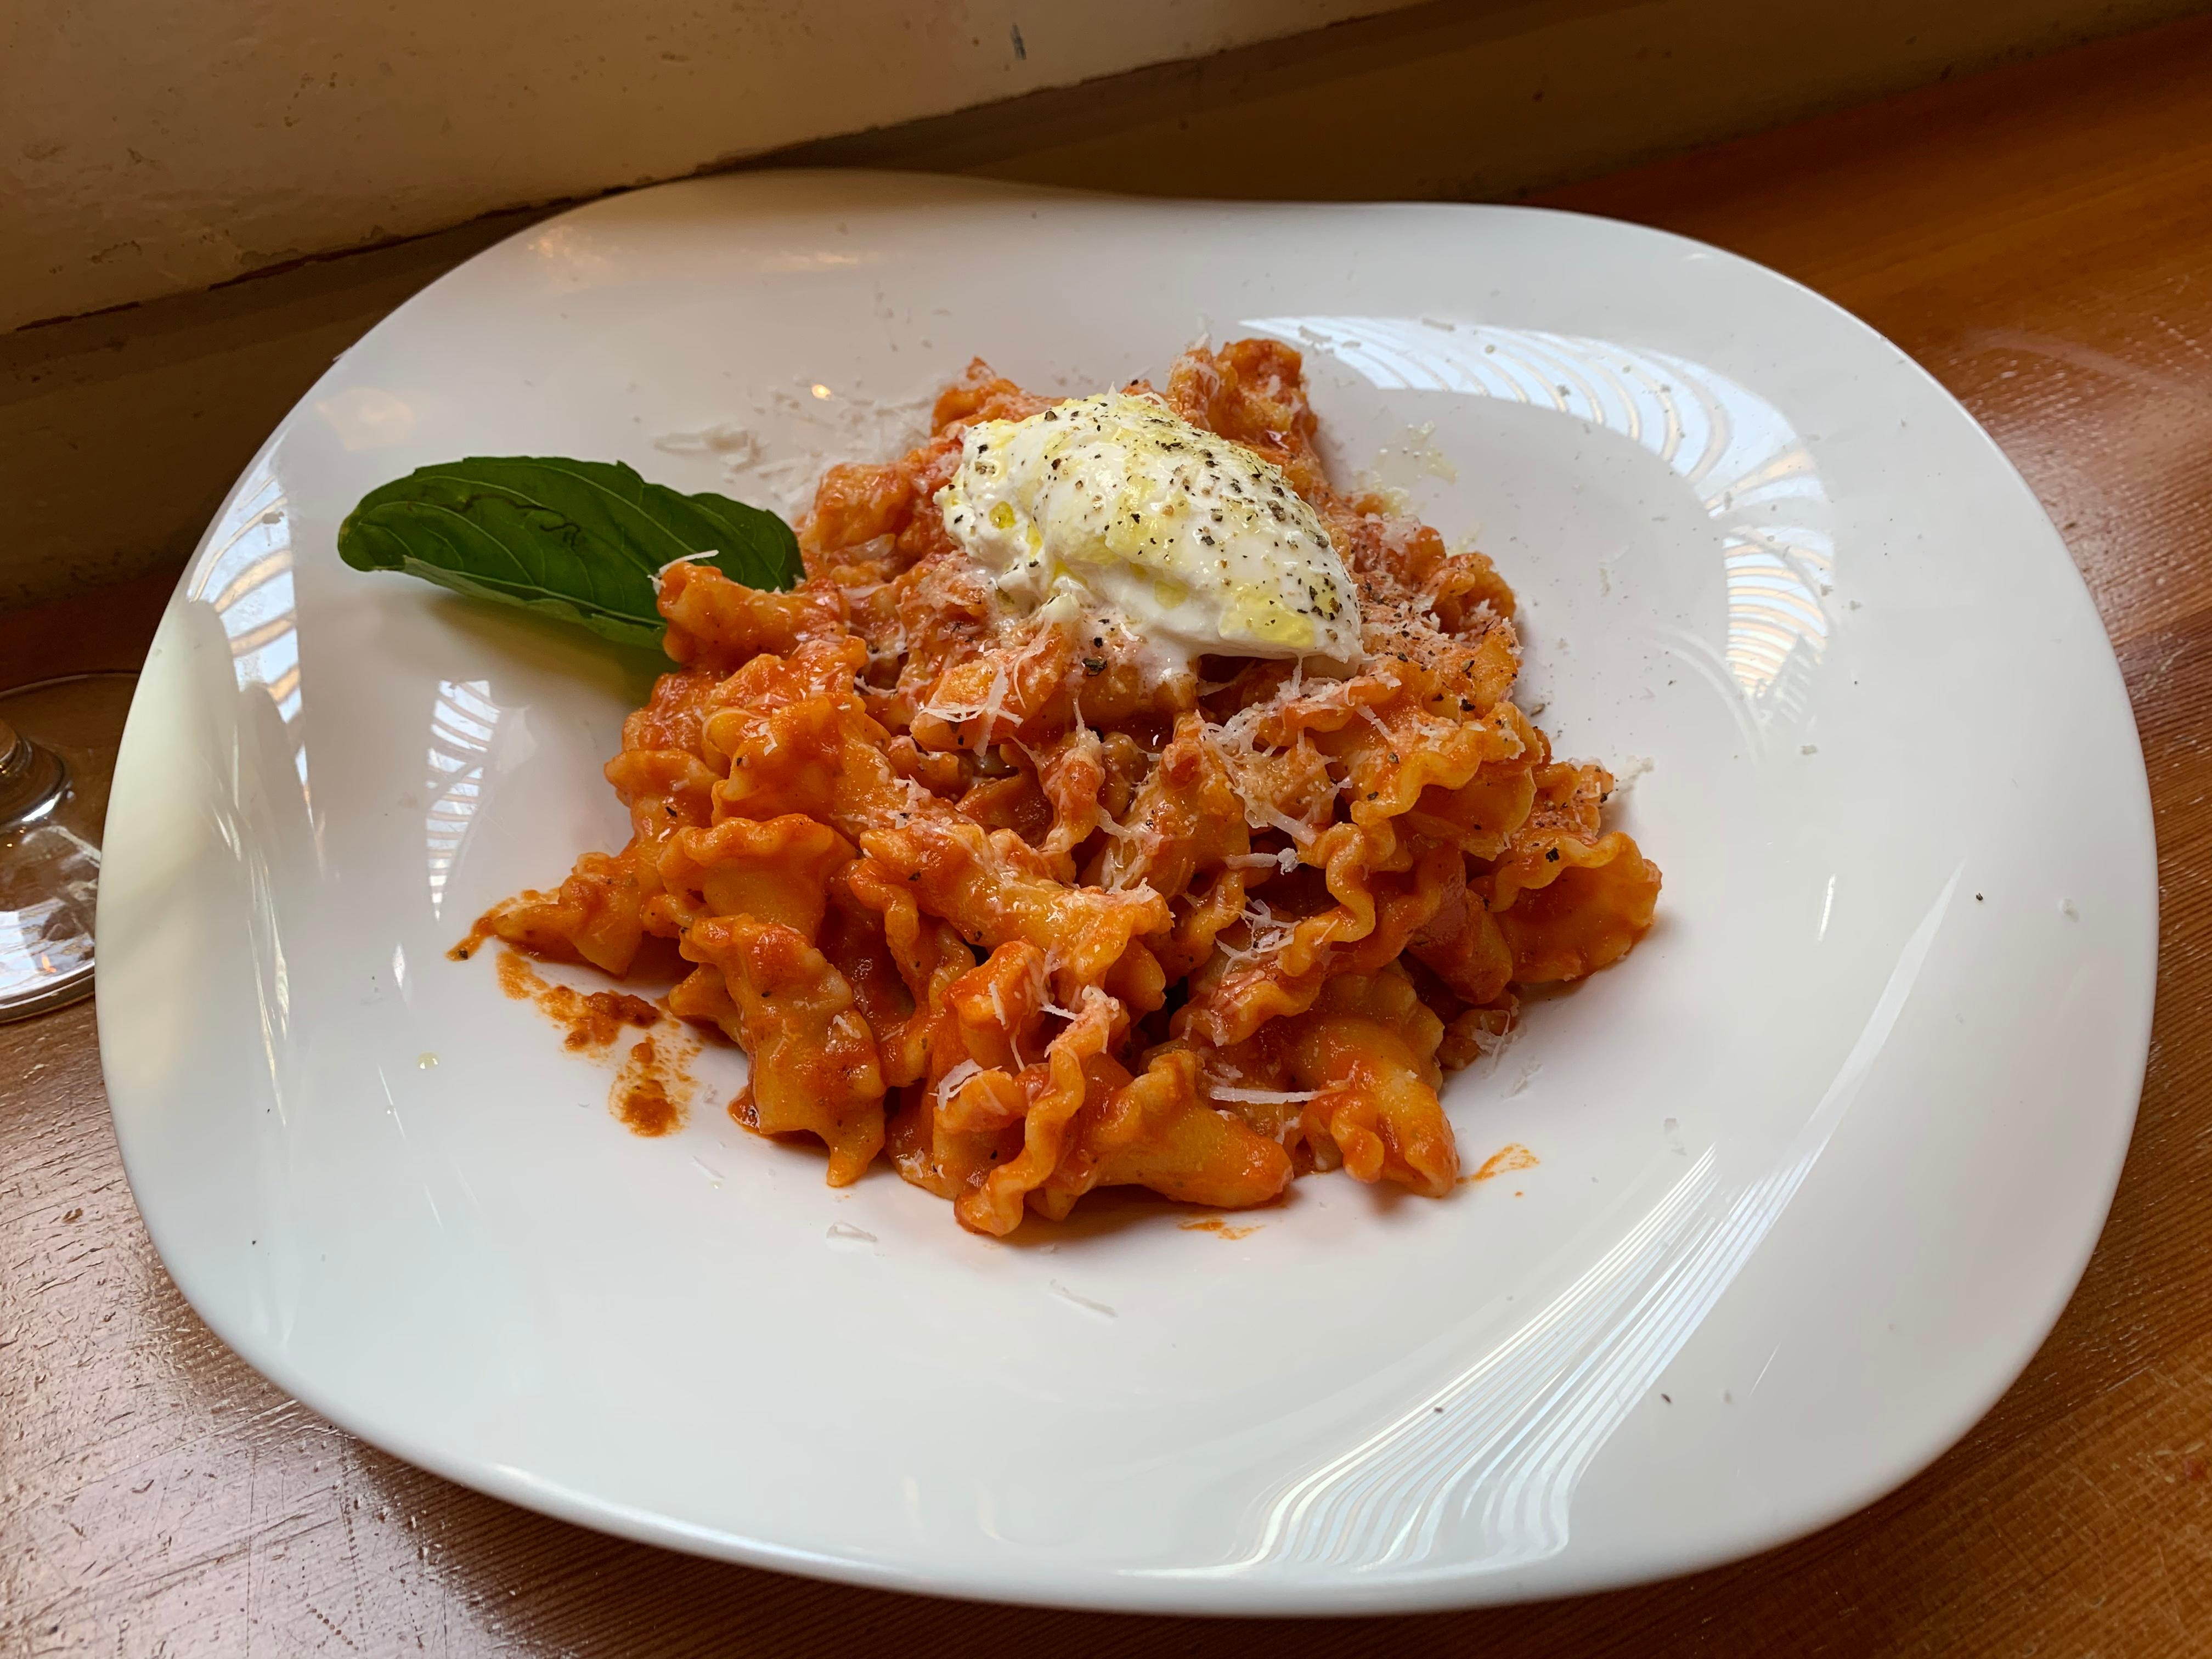 Campanella in pomodoro sauce with a hit of burrata at Pasta Casalinga. (Image: Frank Guanco)